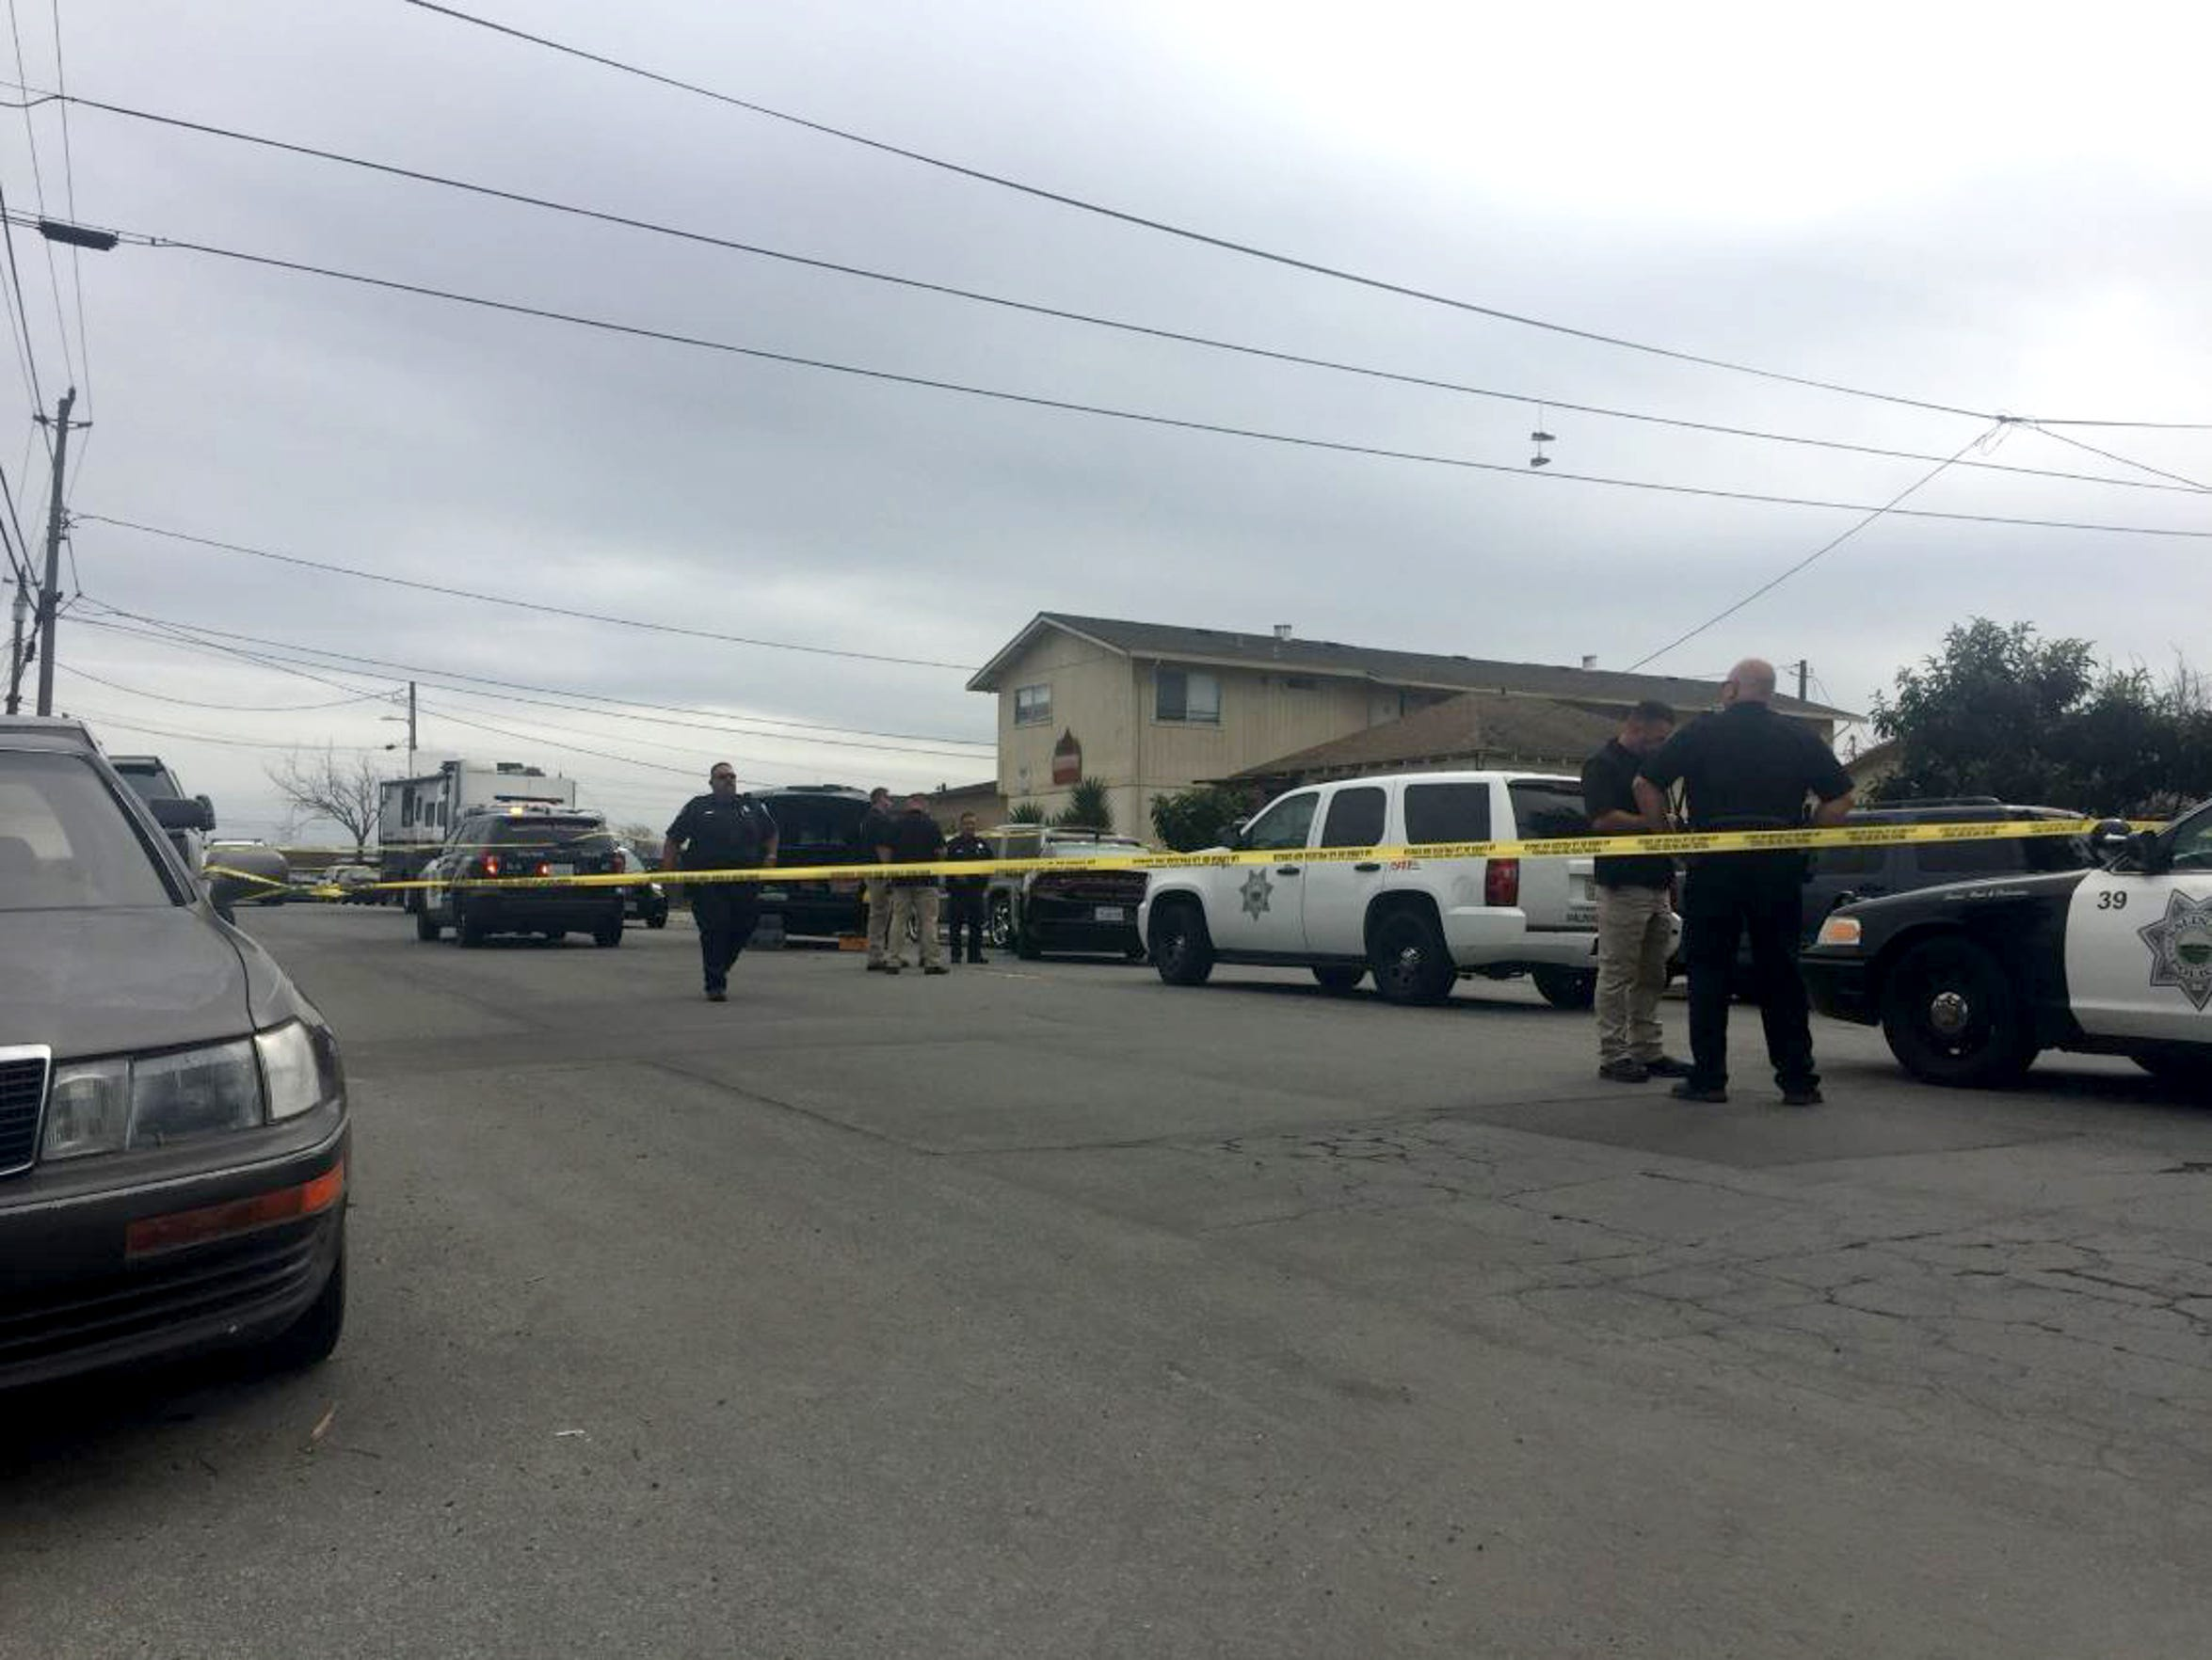 Salinas police fatally shot Brenda Rodriguez Mendoza during a standoff on March 1, 2019.